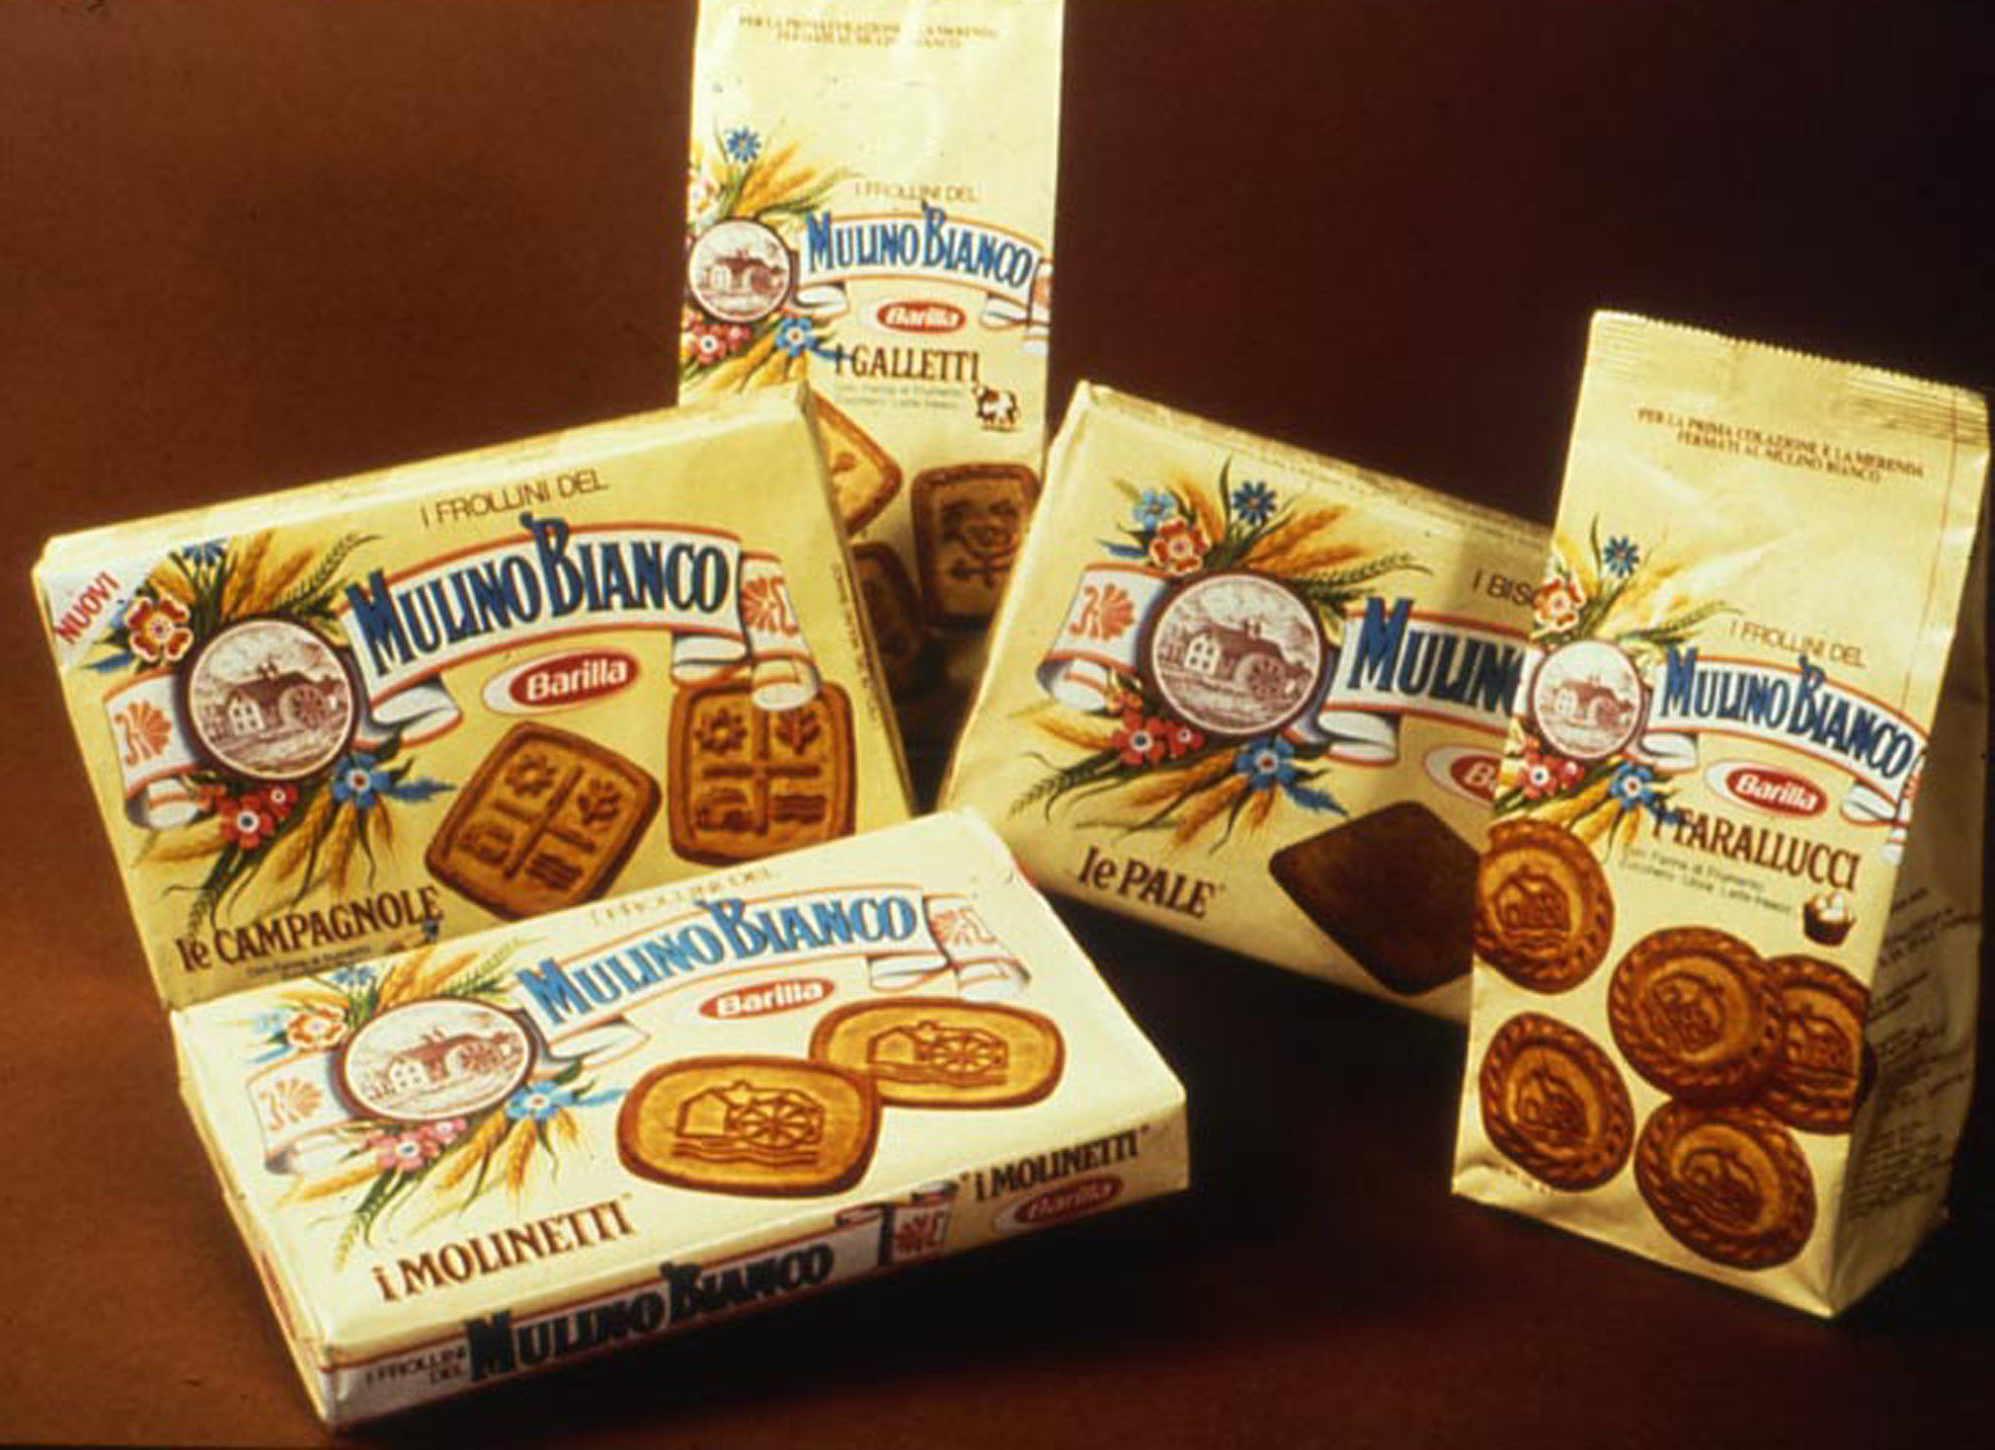 The first packaging of Mulino Bianco biscuits, 1976